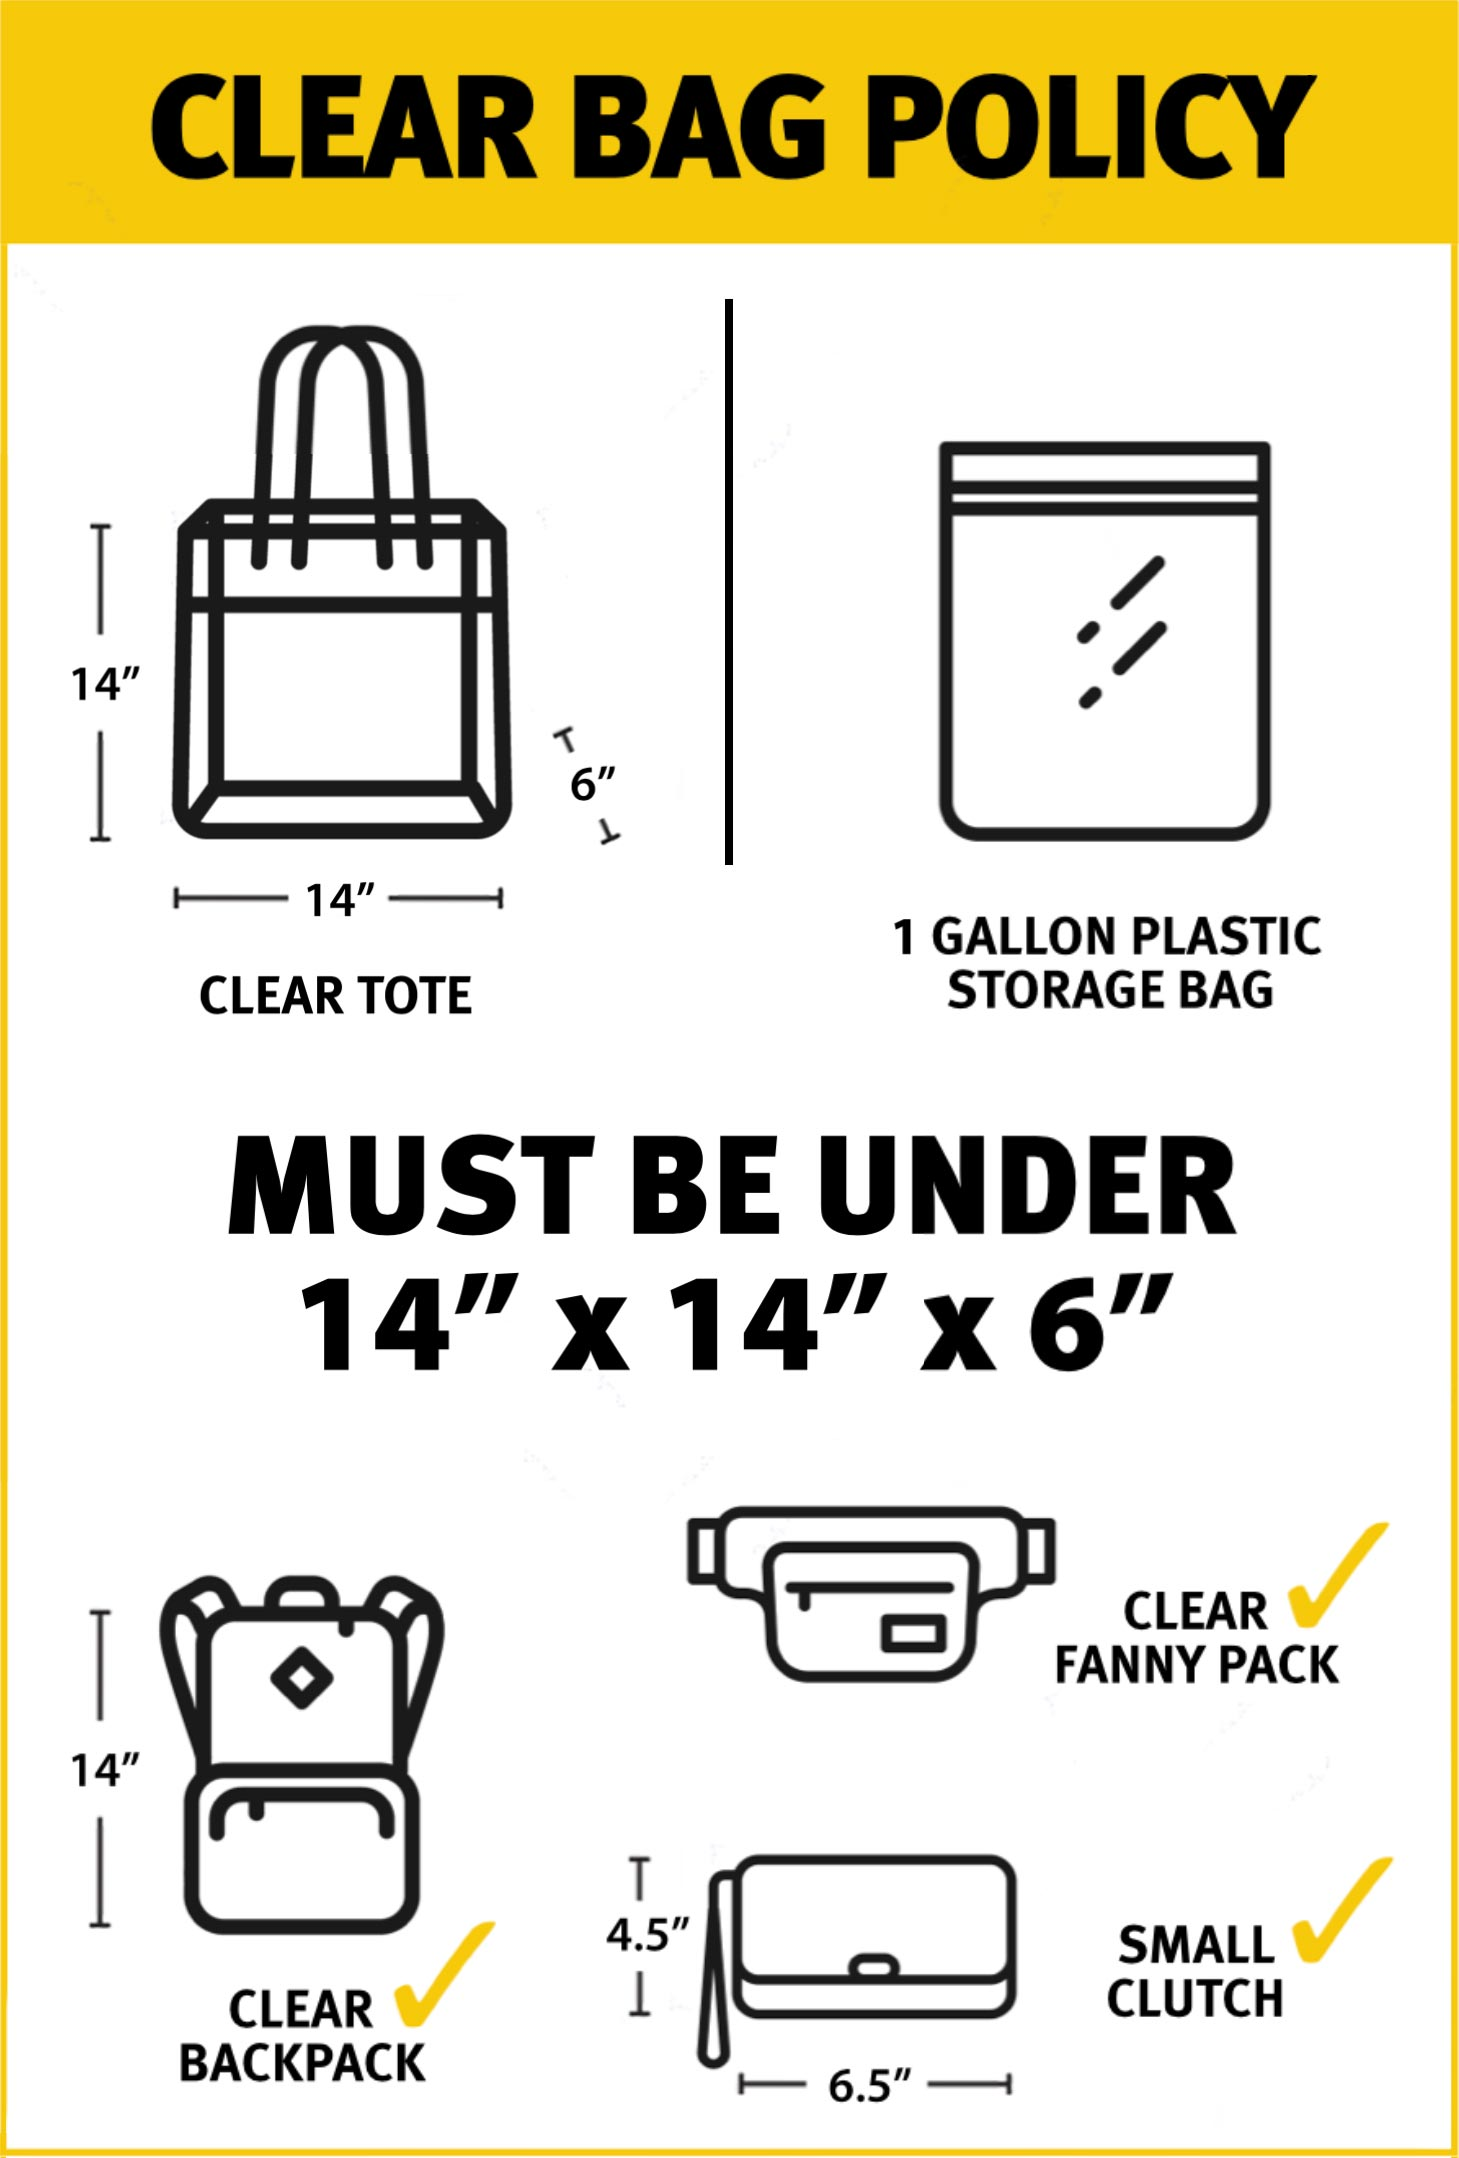 Clear Bag Policy_Resized 4.jpg